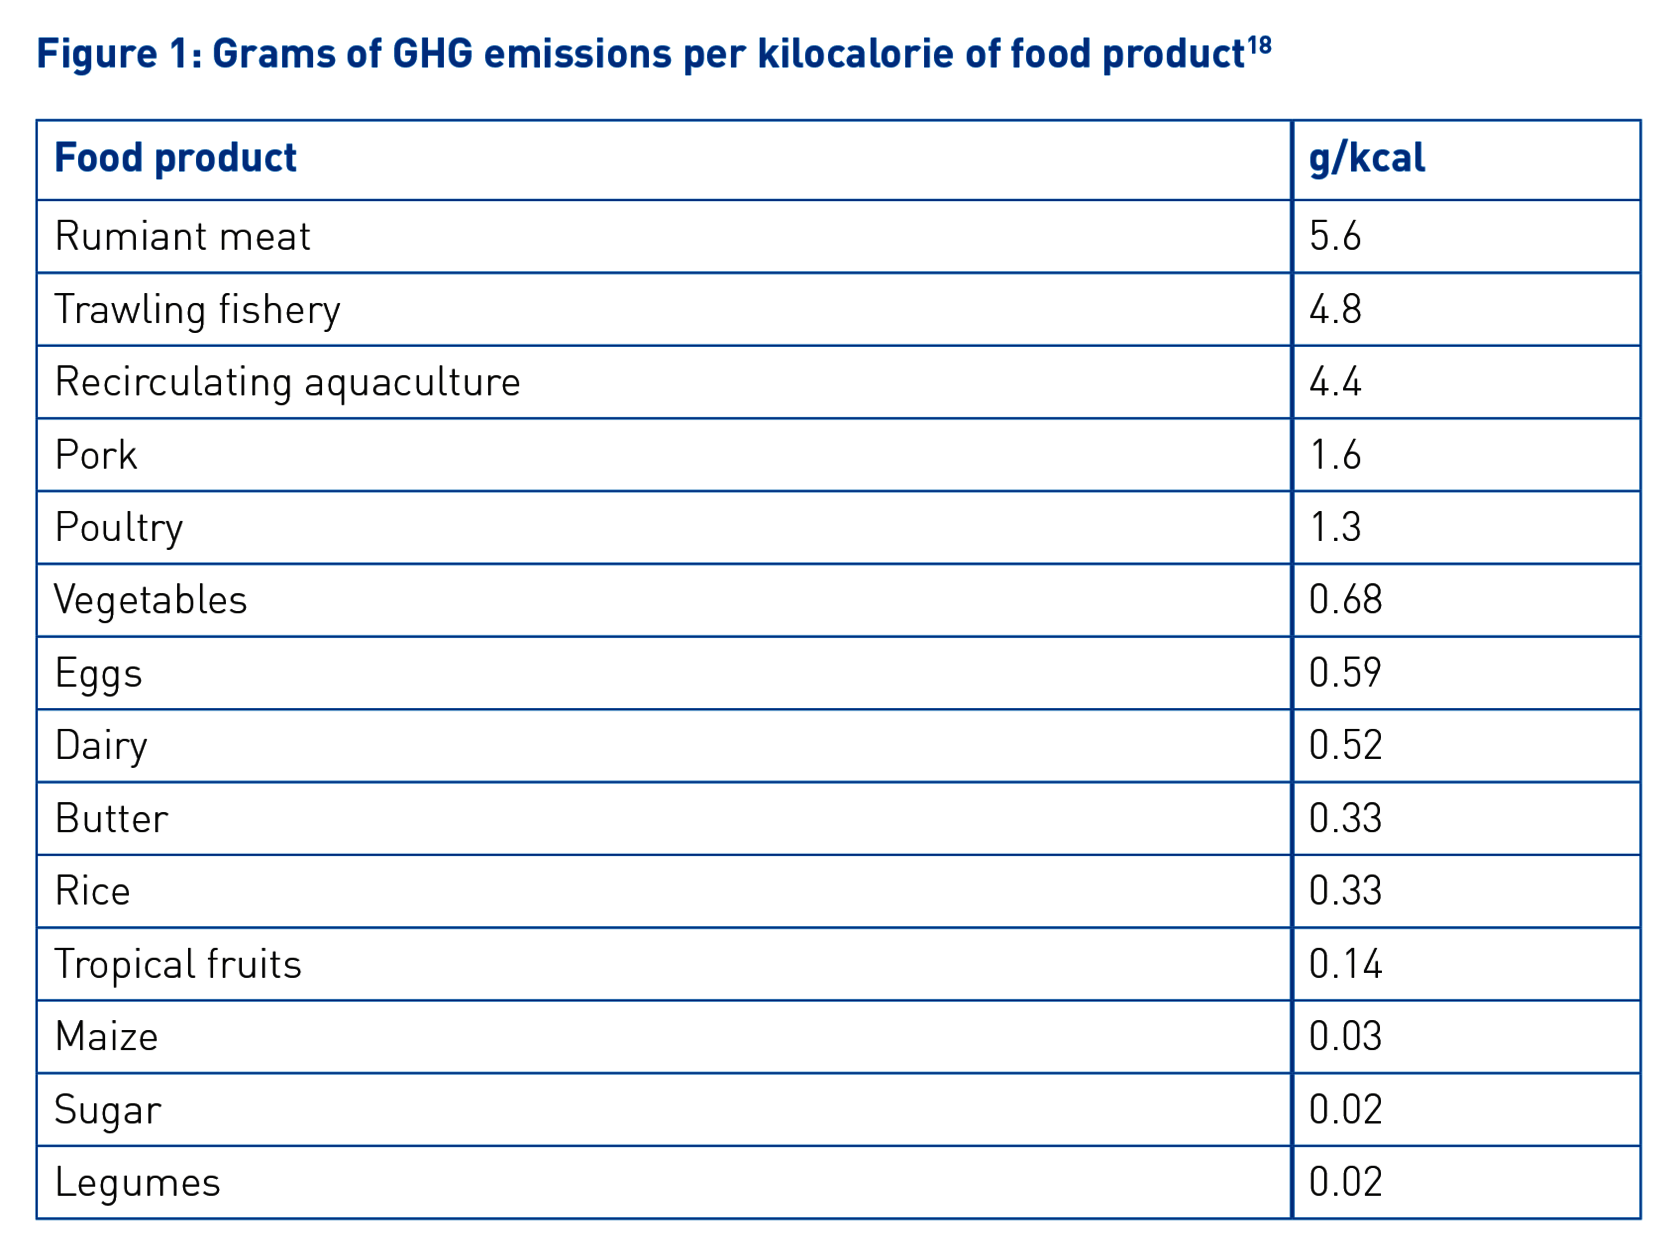 Table showing the grams of GHG emissions per kilocalorie of food.